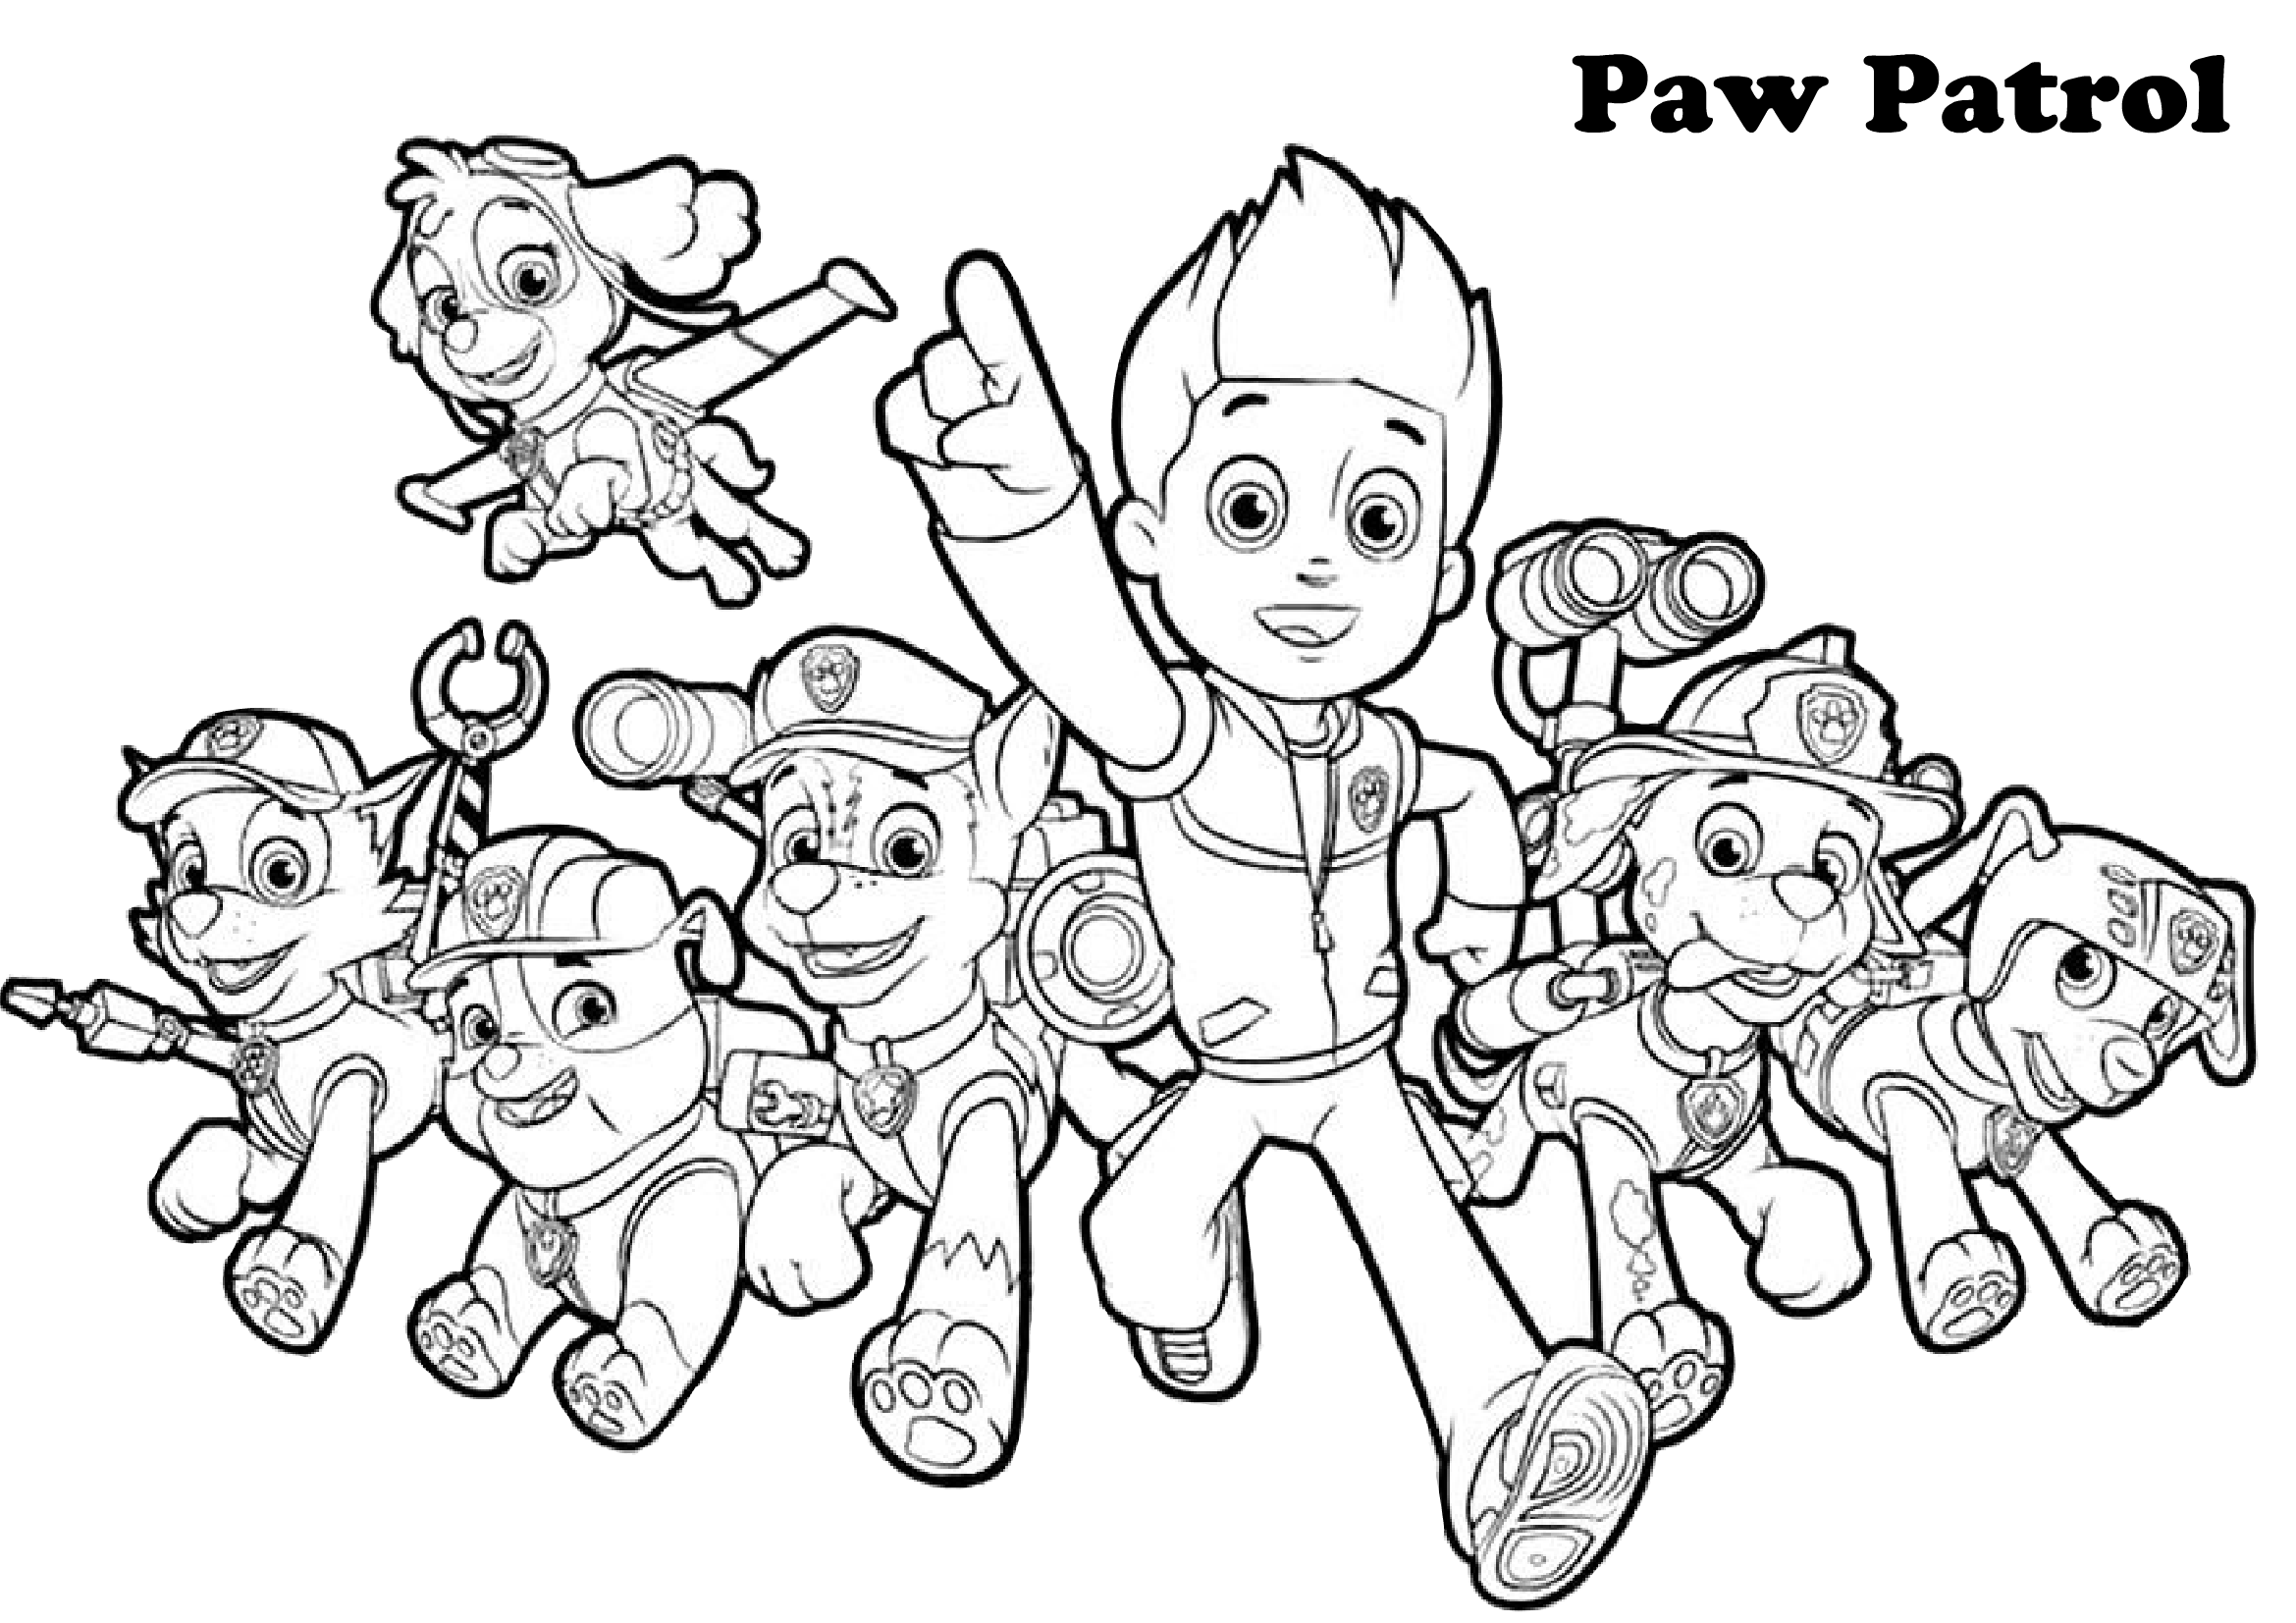 print paw patrol coloring pages paw patrol coloring pages print and colorcom pages print paw coloring patrol